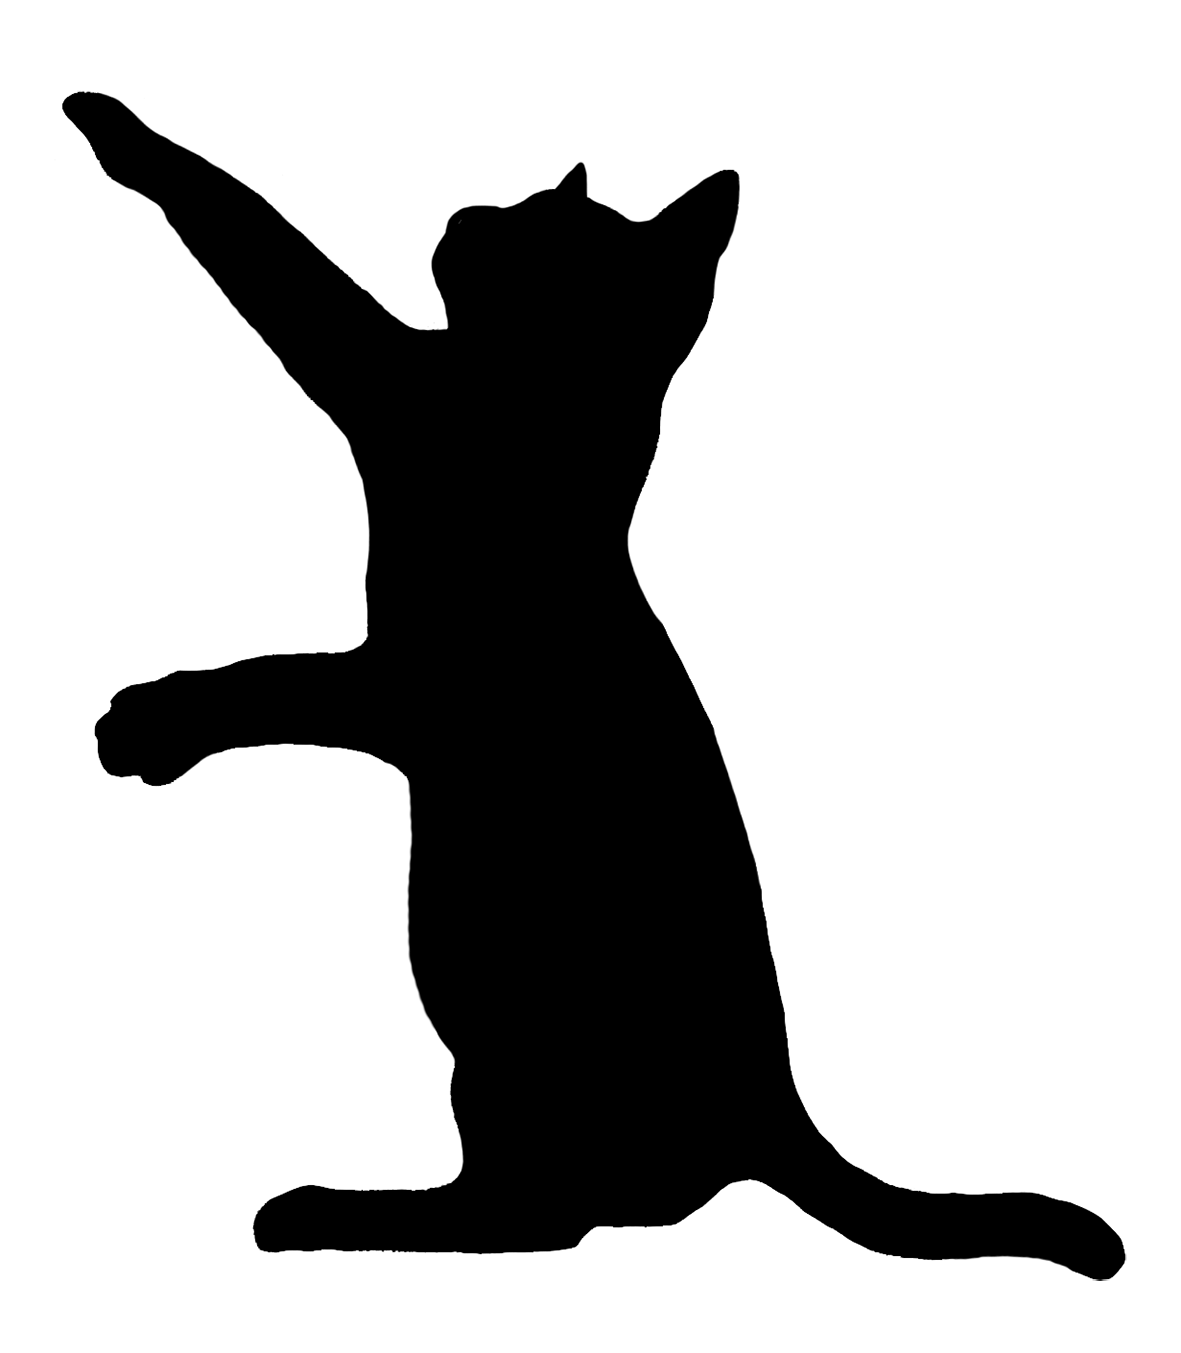 hight resolution of cat playing silhouette